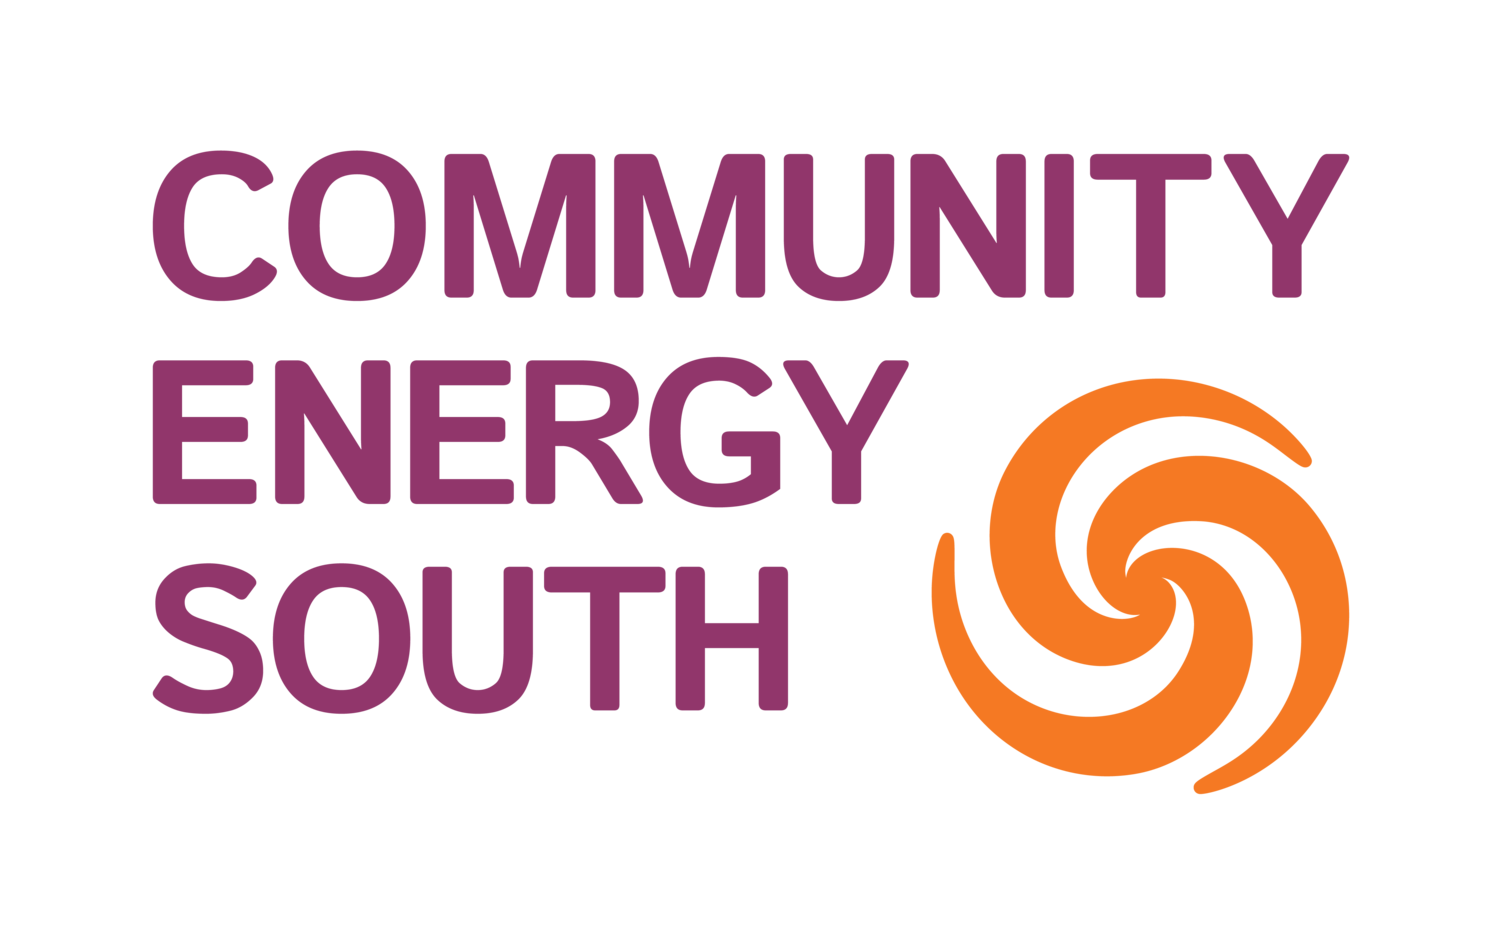 Maid clipart full energy. Group logos community south